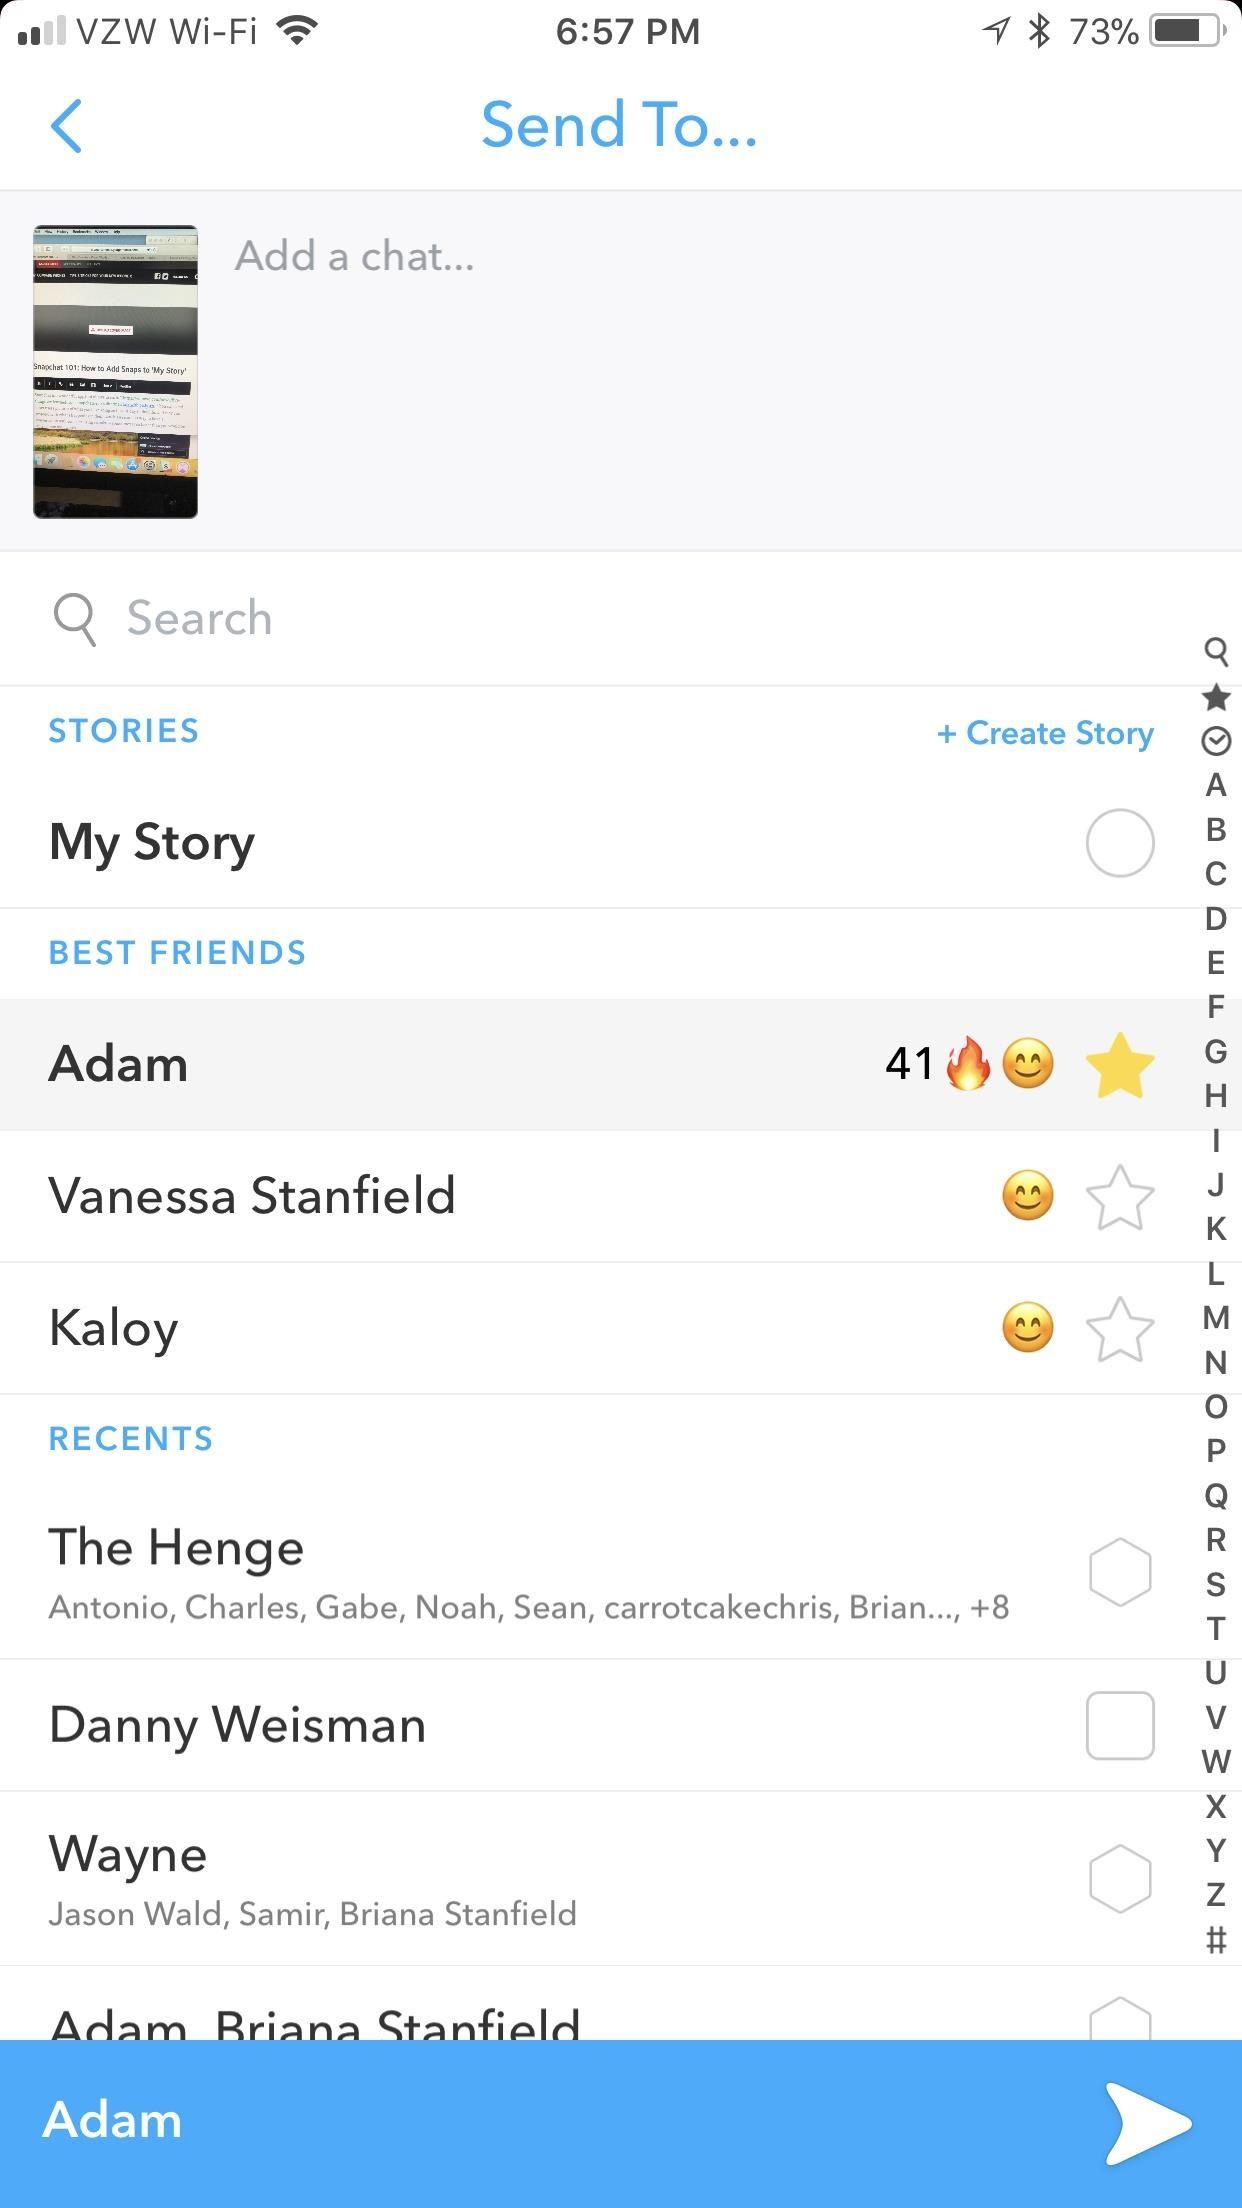 Snapchat 101: How to Use Memories to Save Snaps, Edit Old Snaps & More